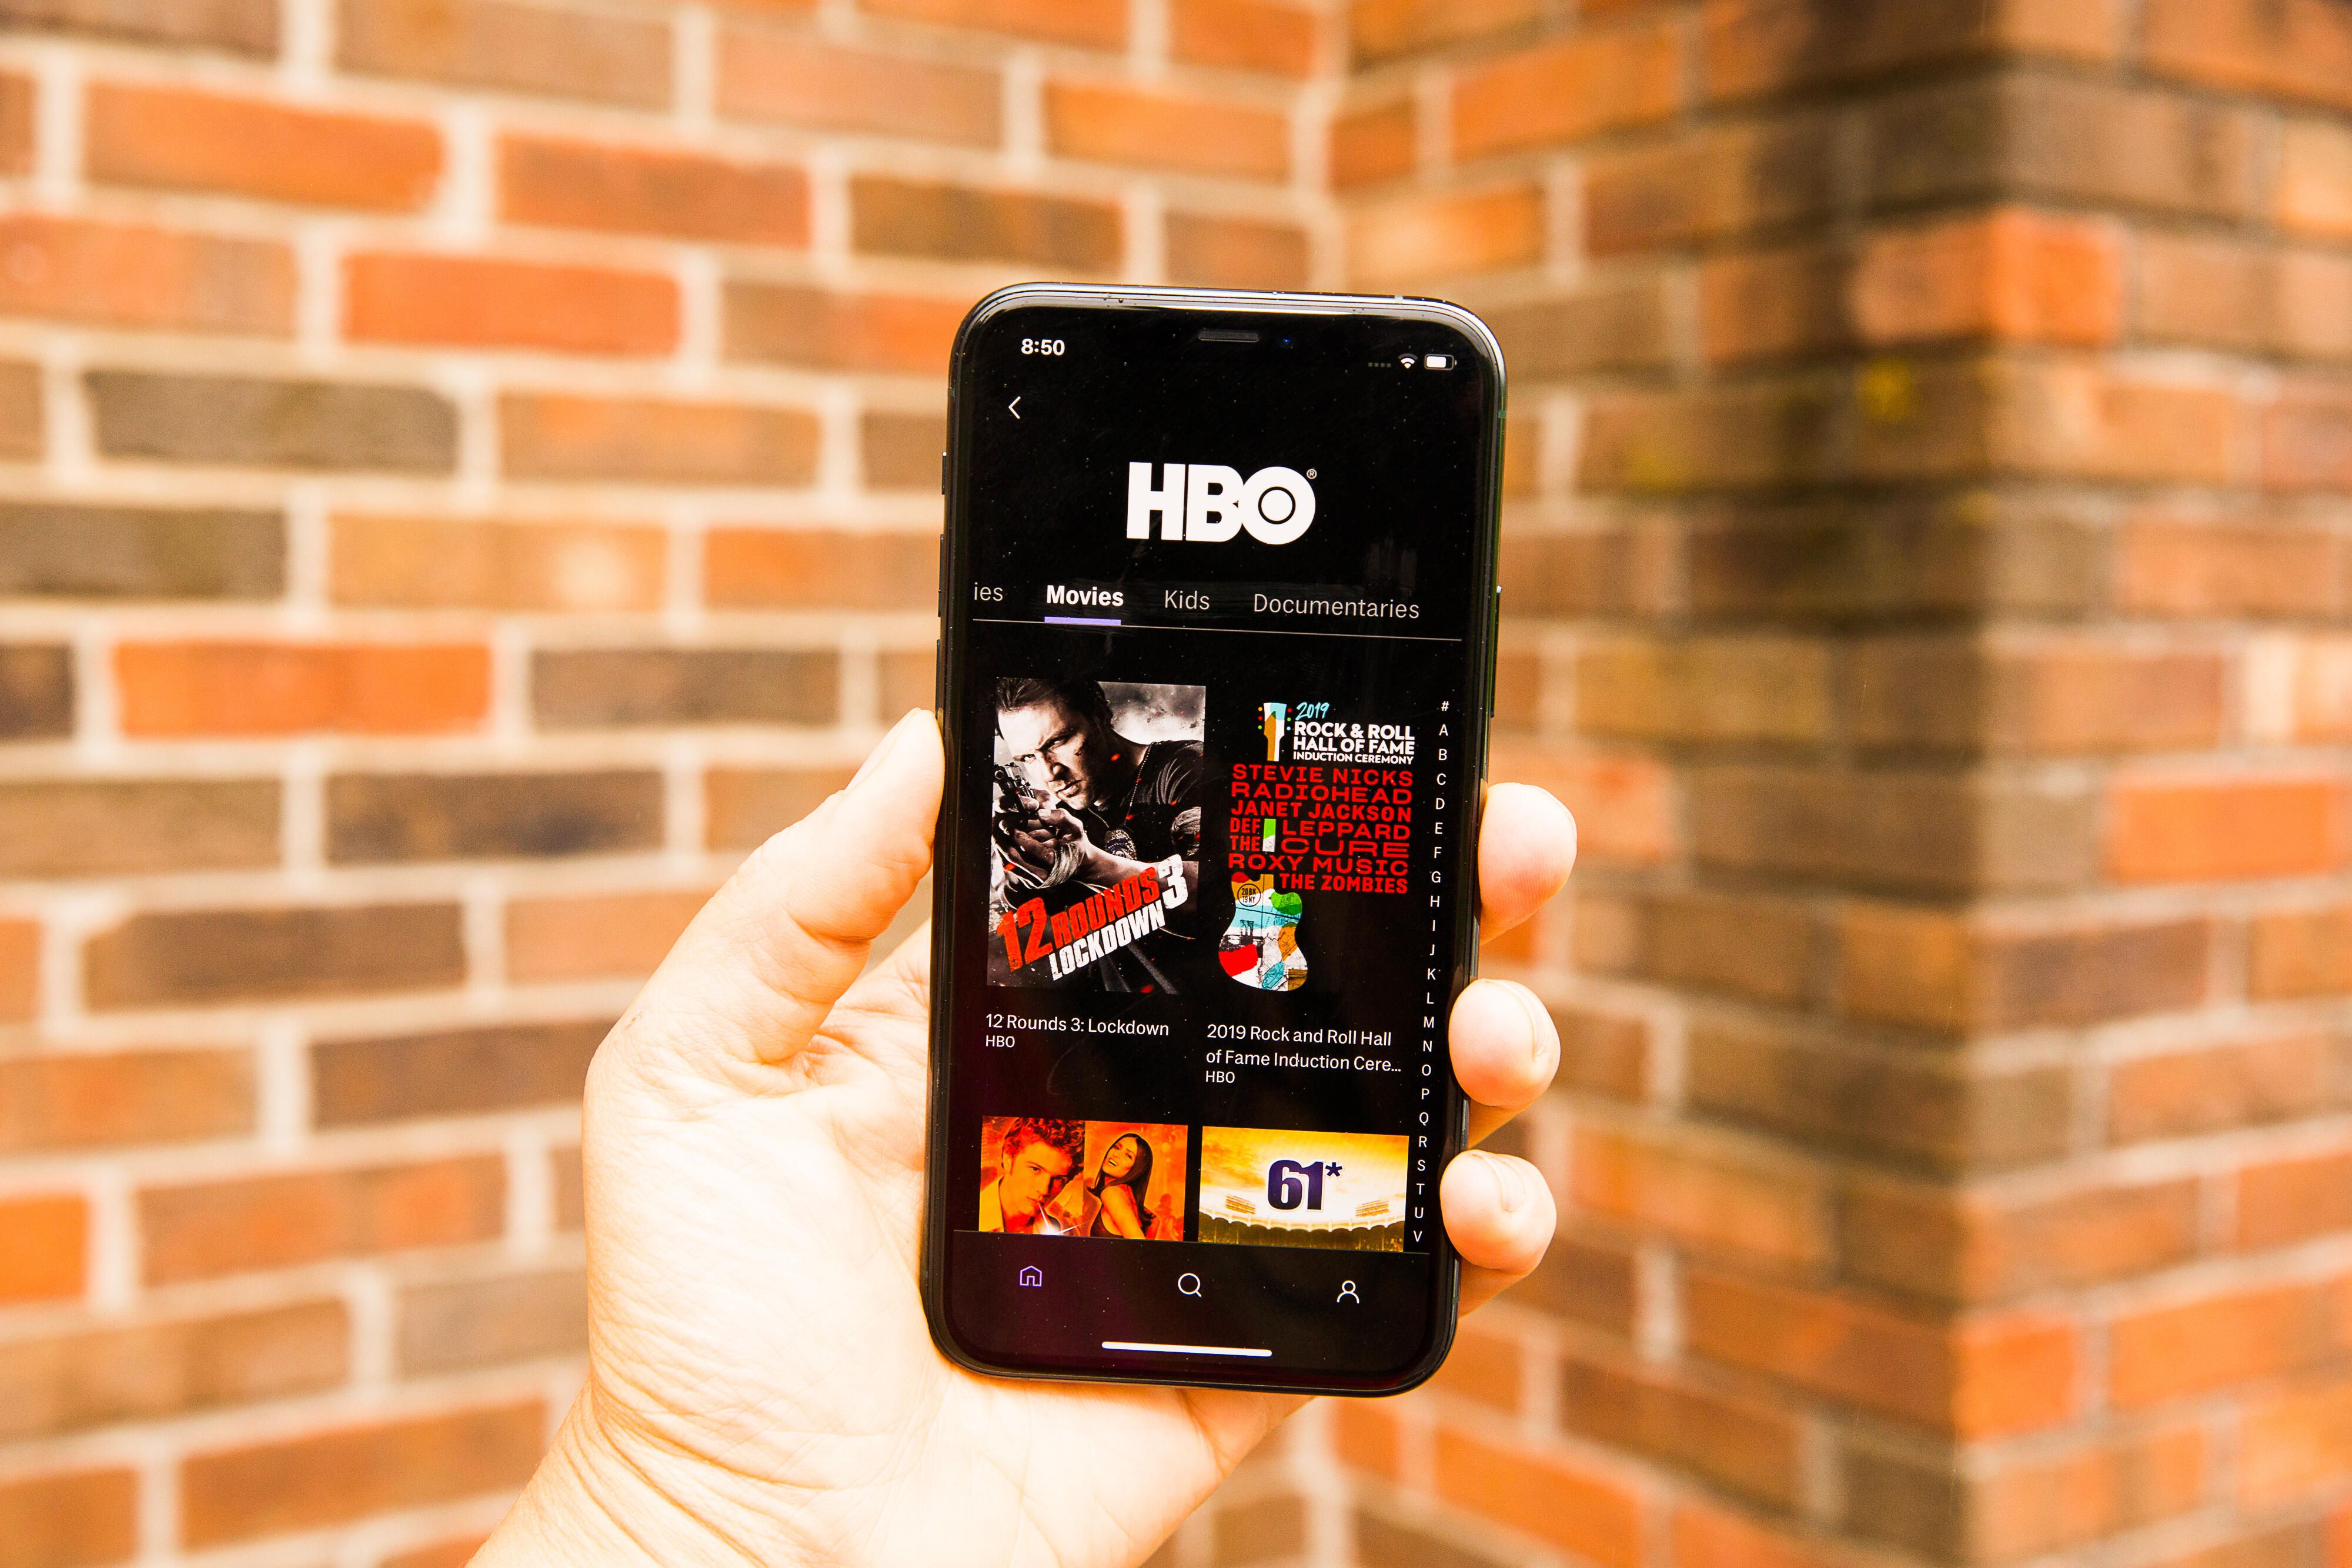 008-hbo-max-ios-iphone-11-pro